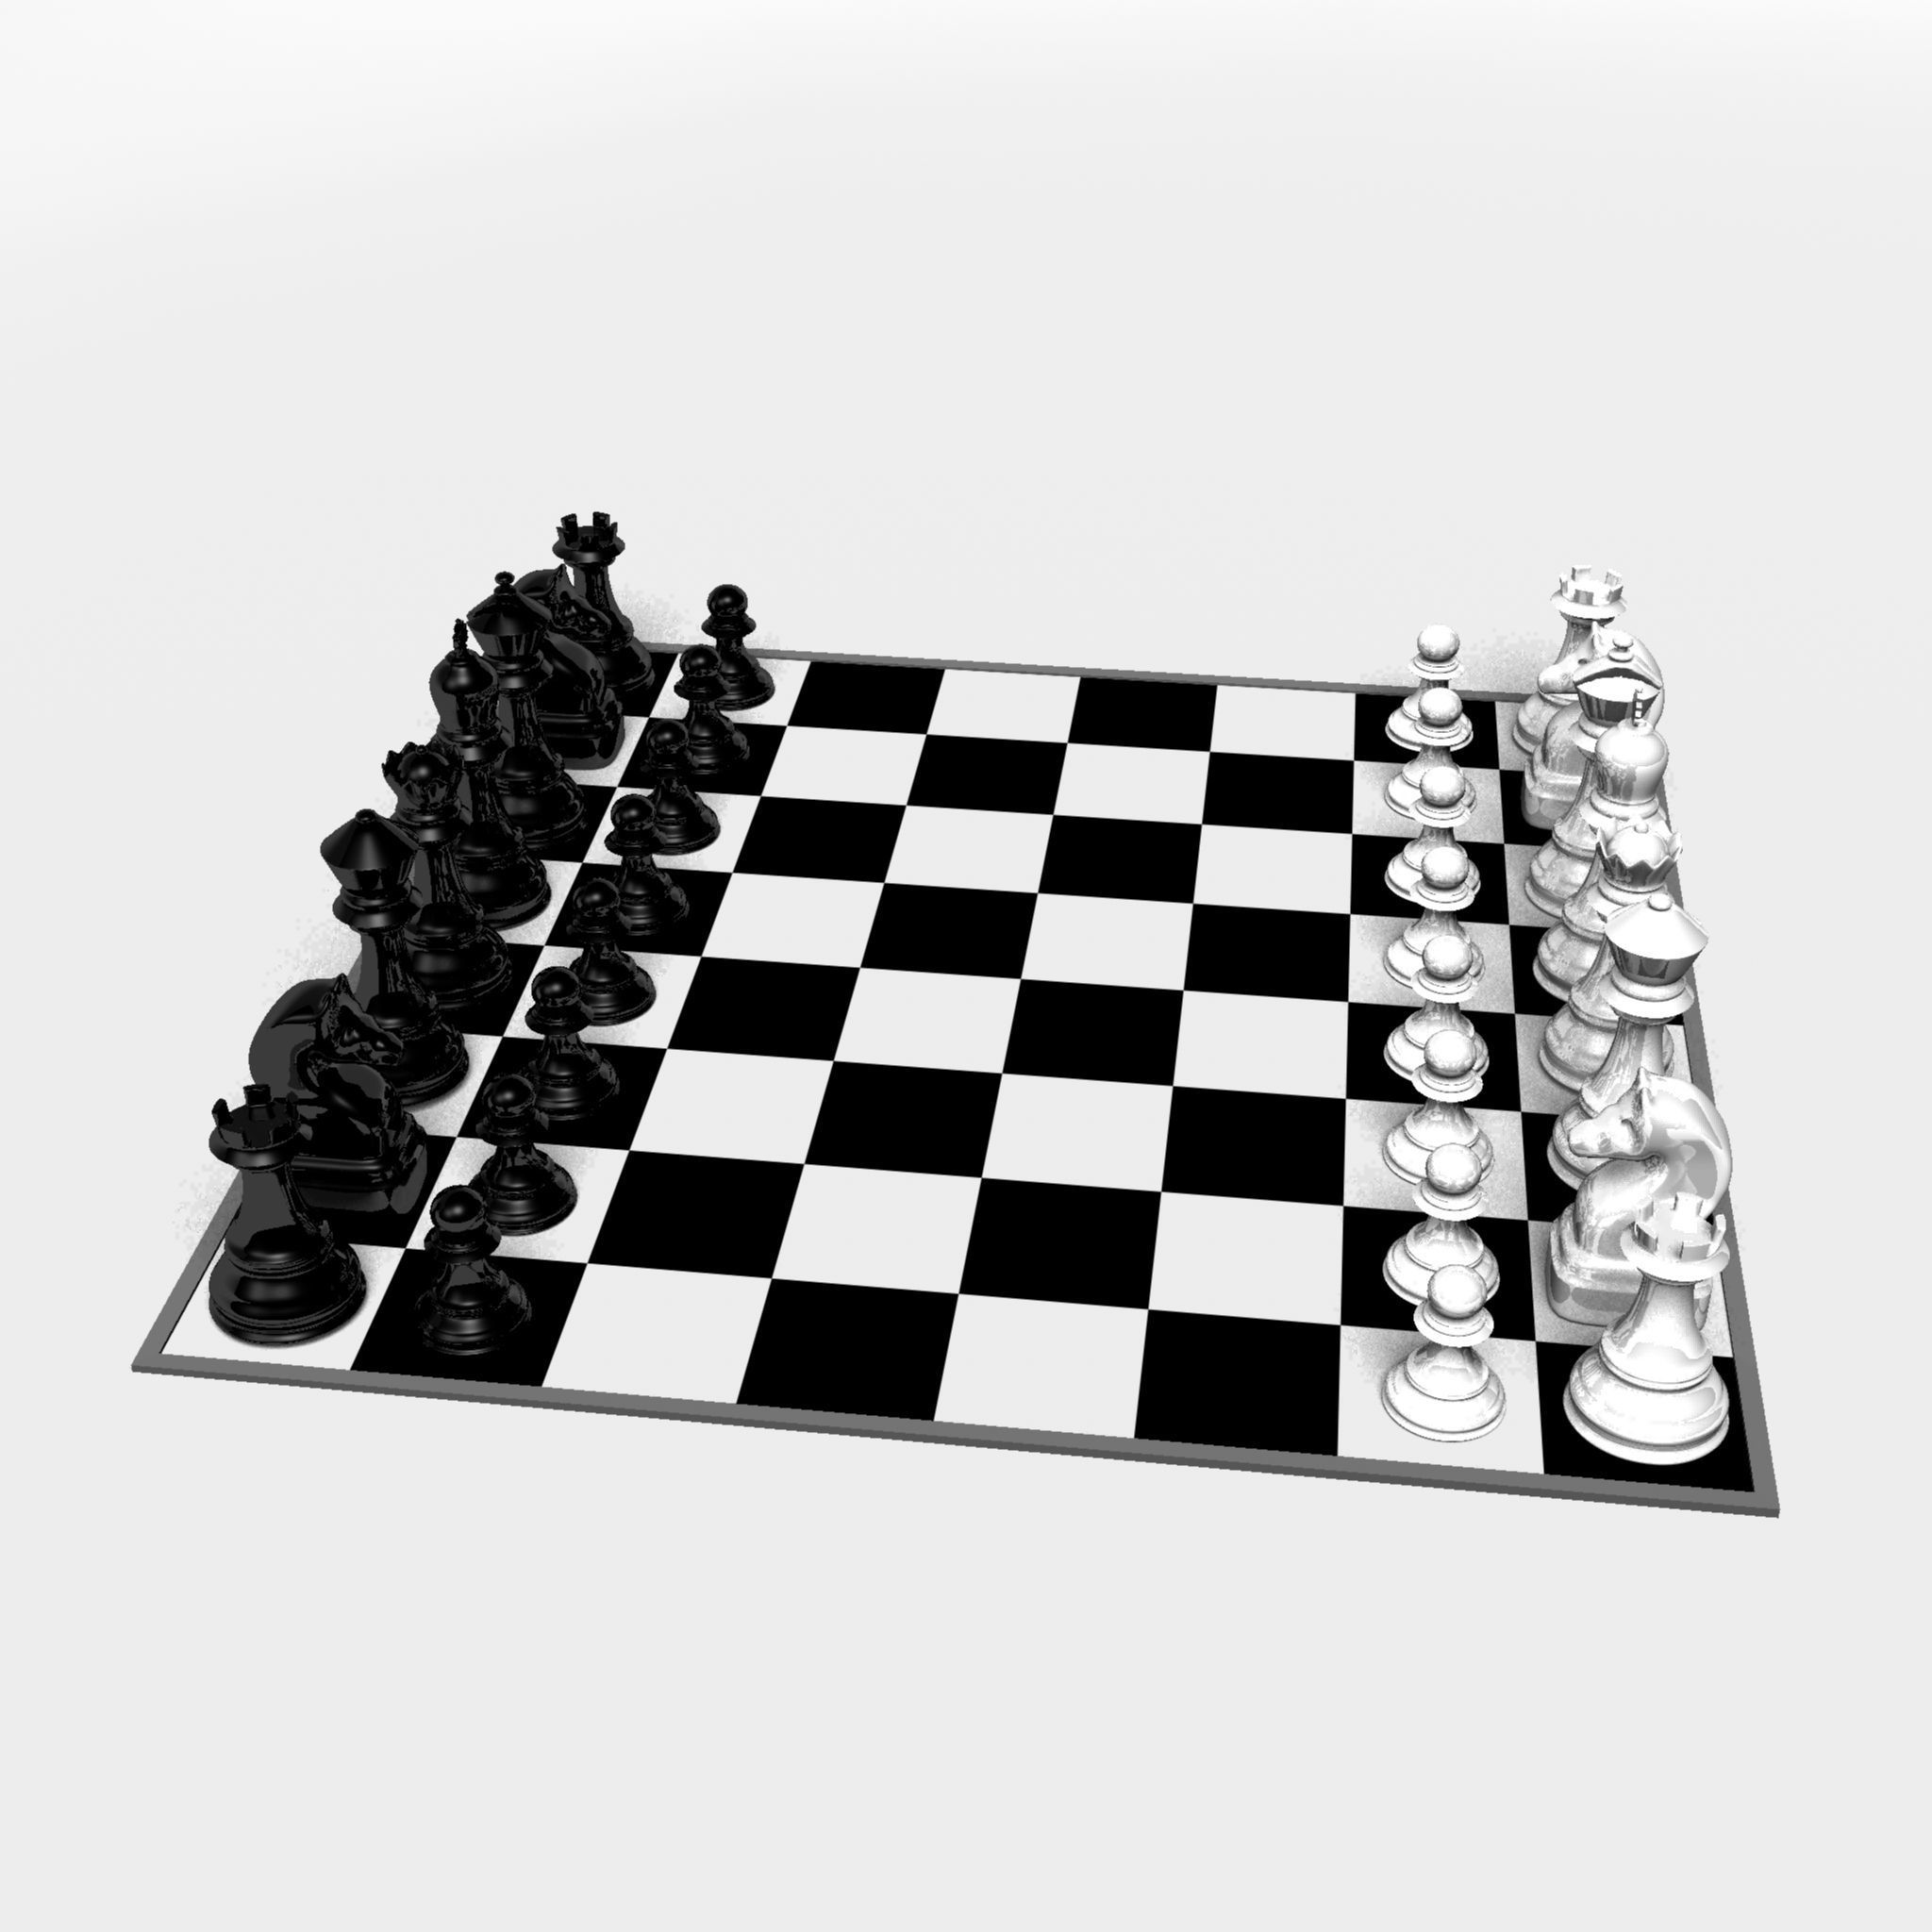 graphic regarding Printable Chess Board titled Chess board 3D Print Fashion